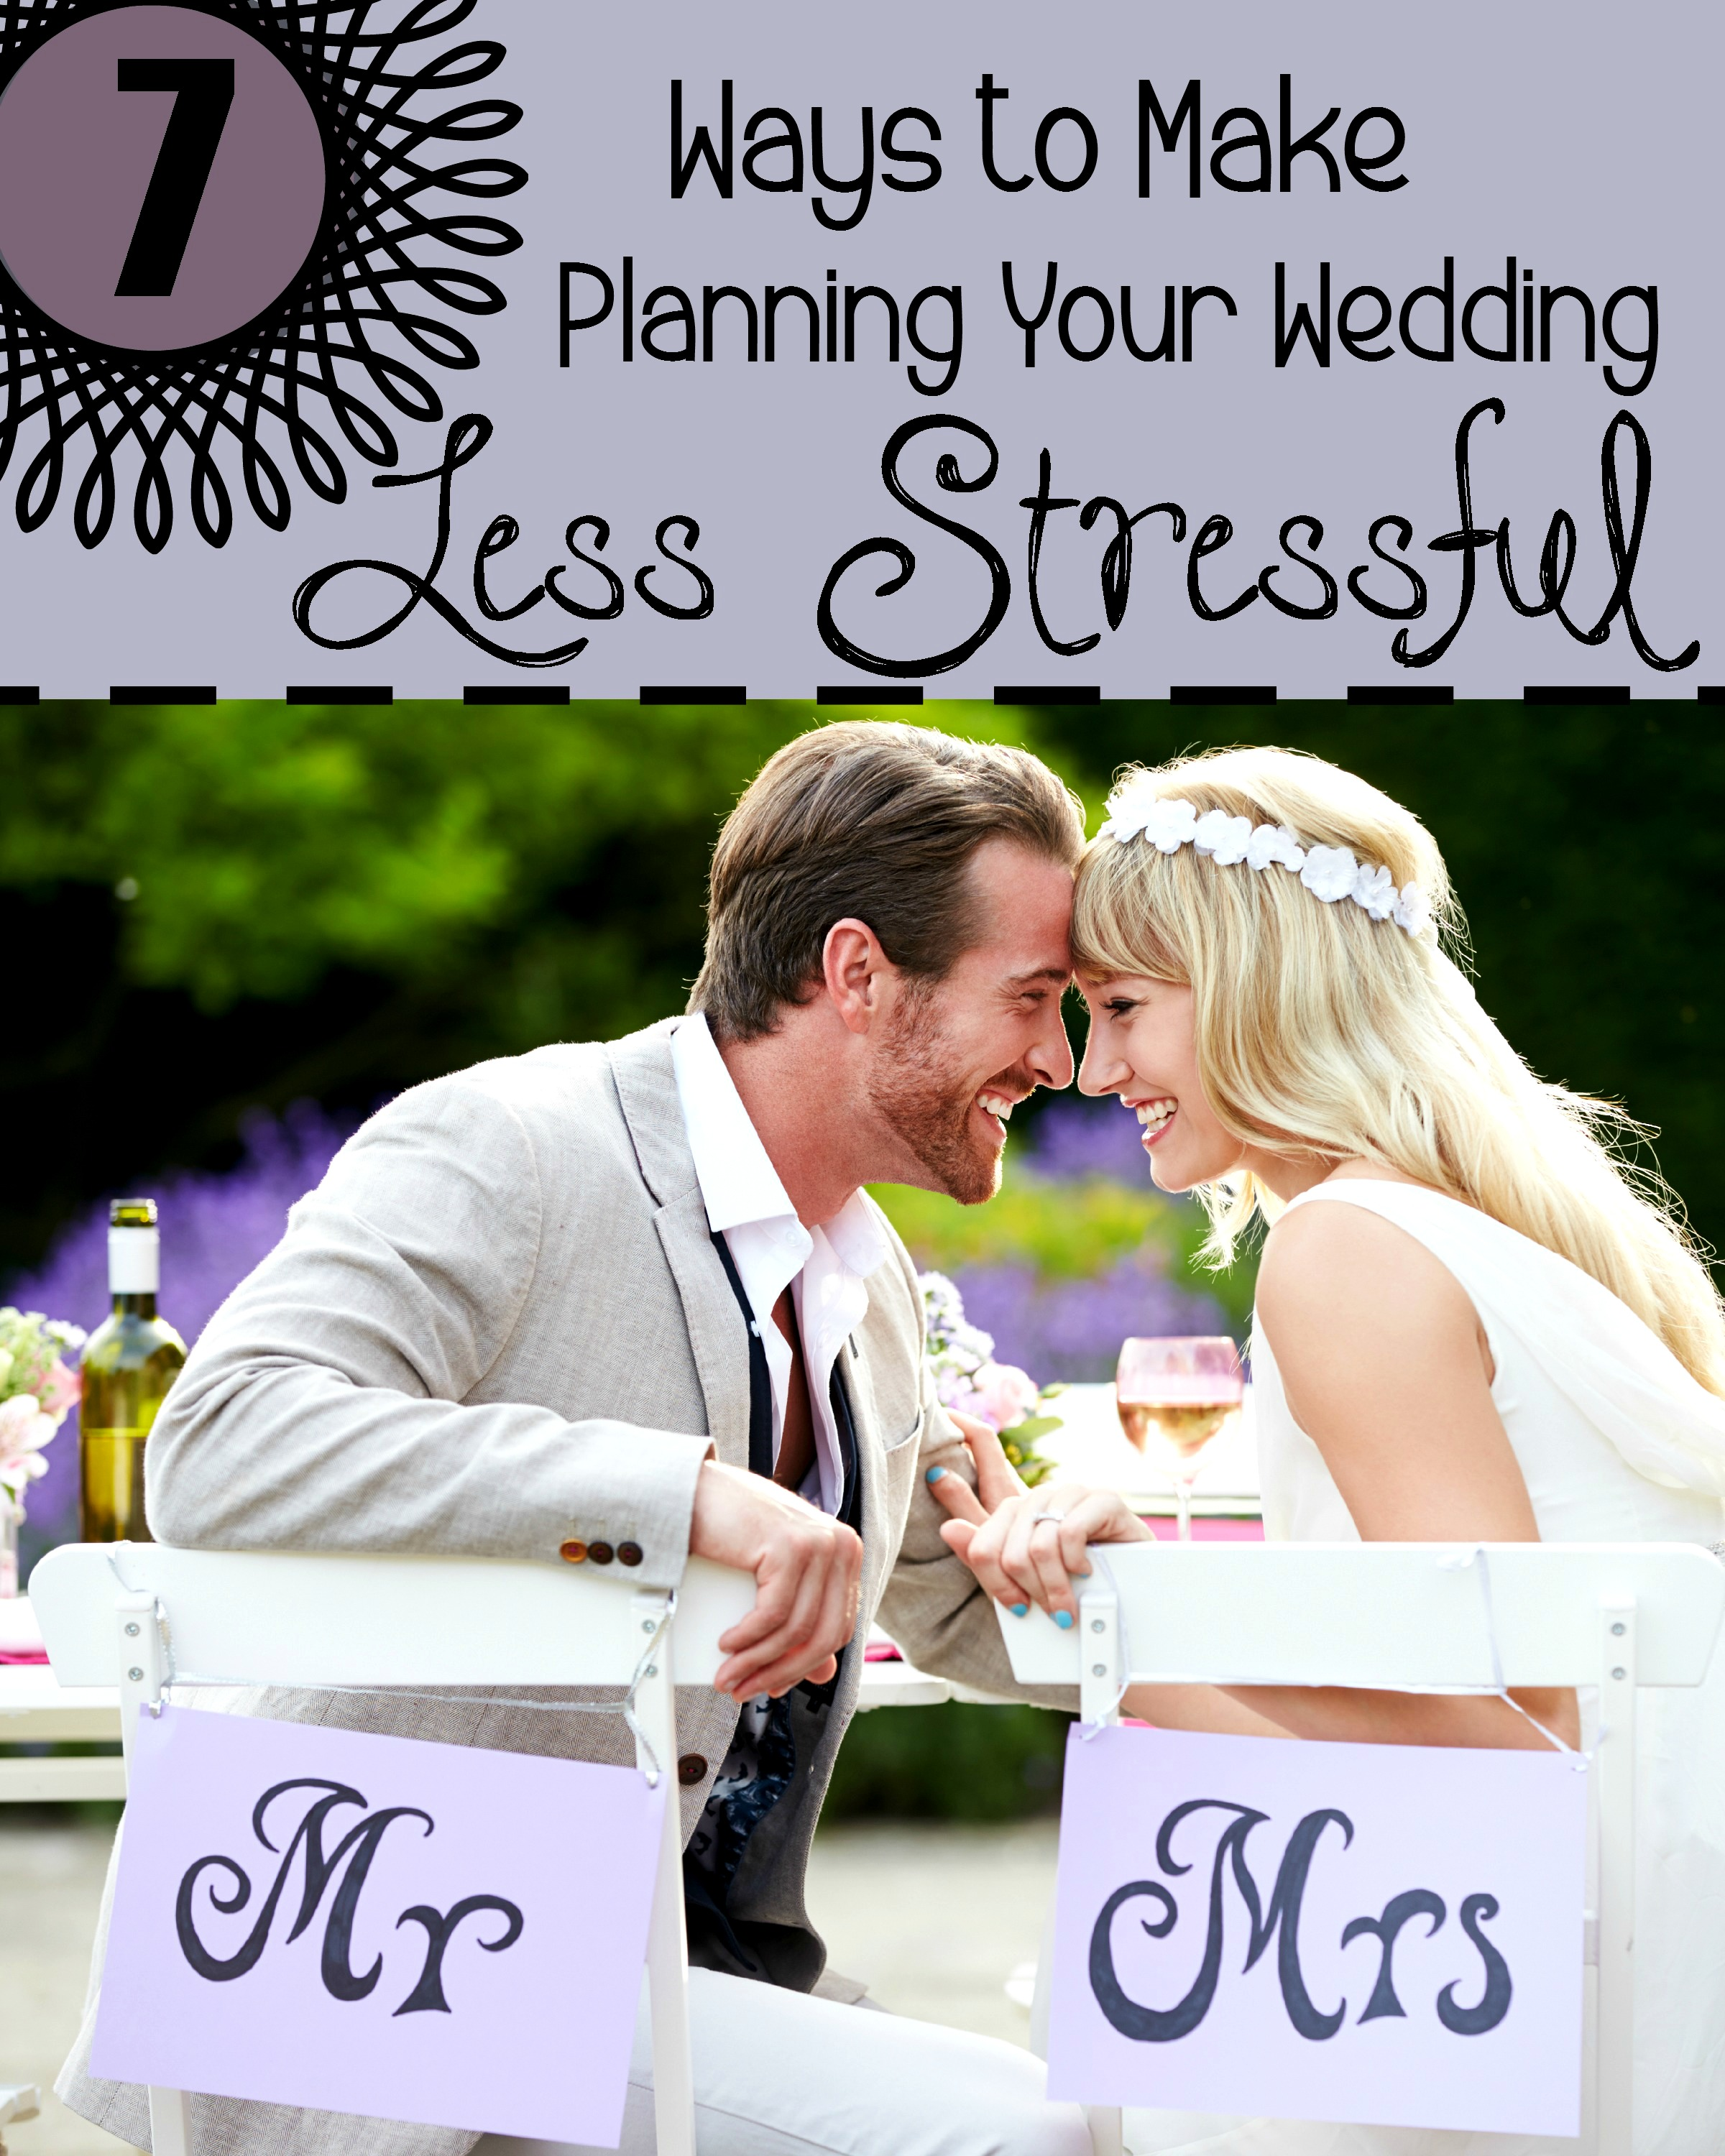 7 Ways to Make Wedding Planning Less Stressful